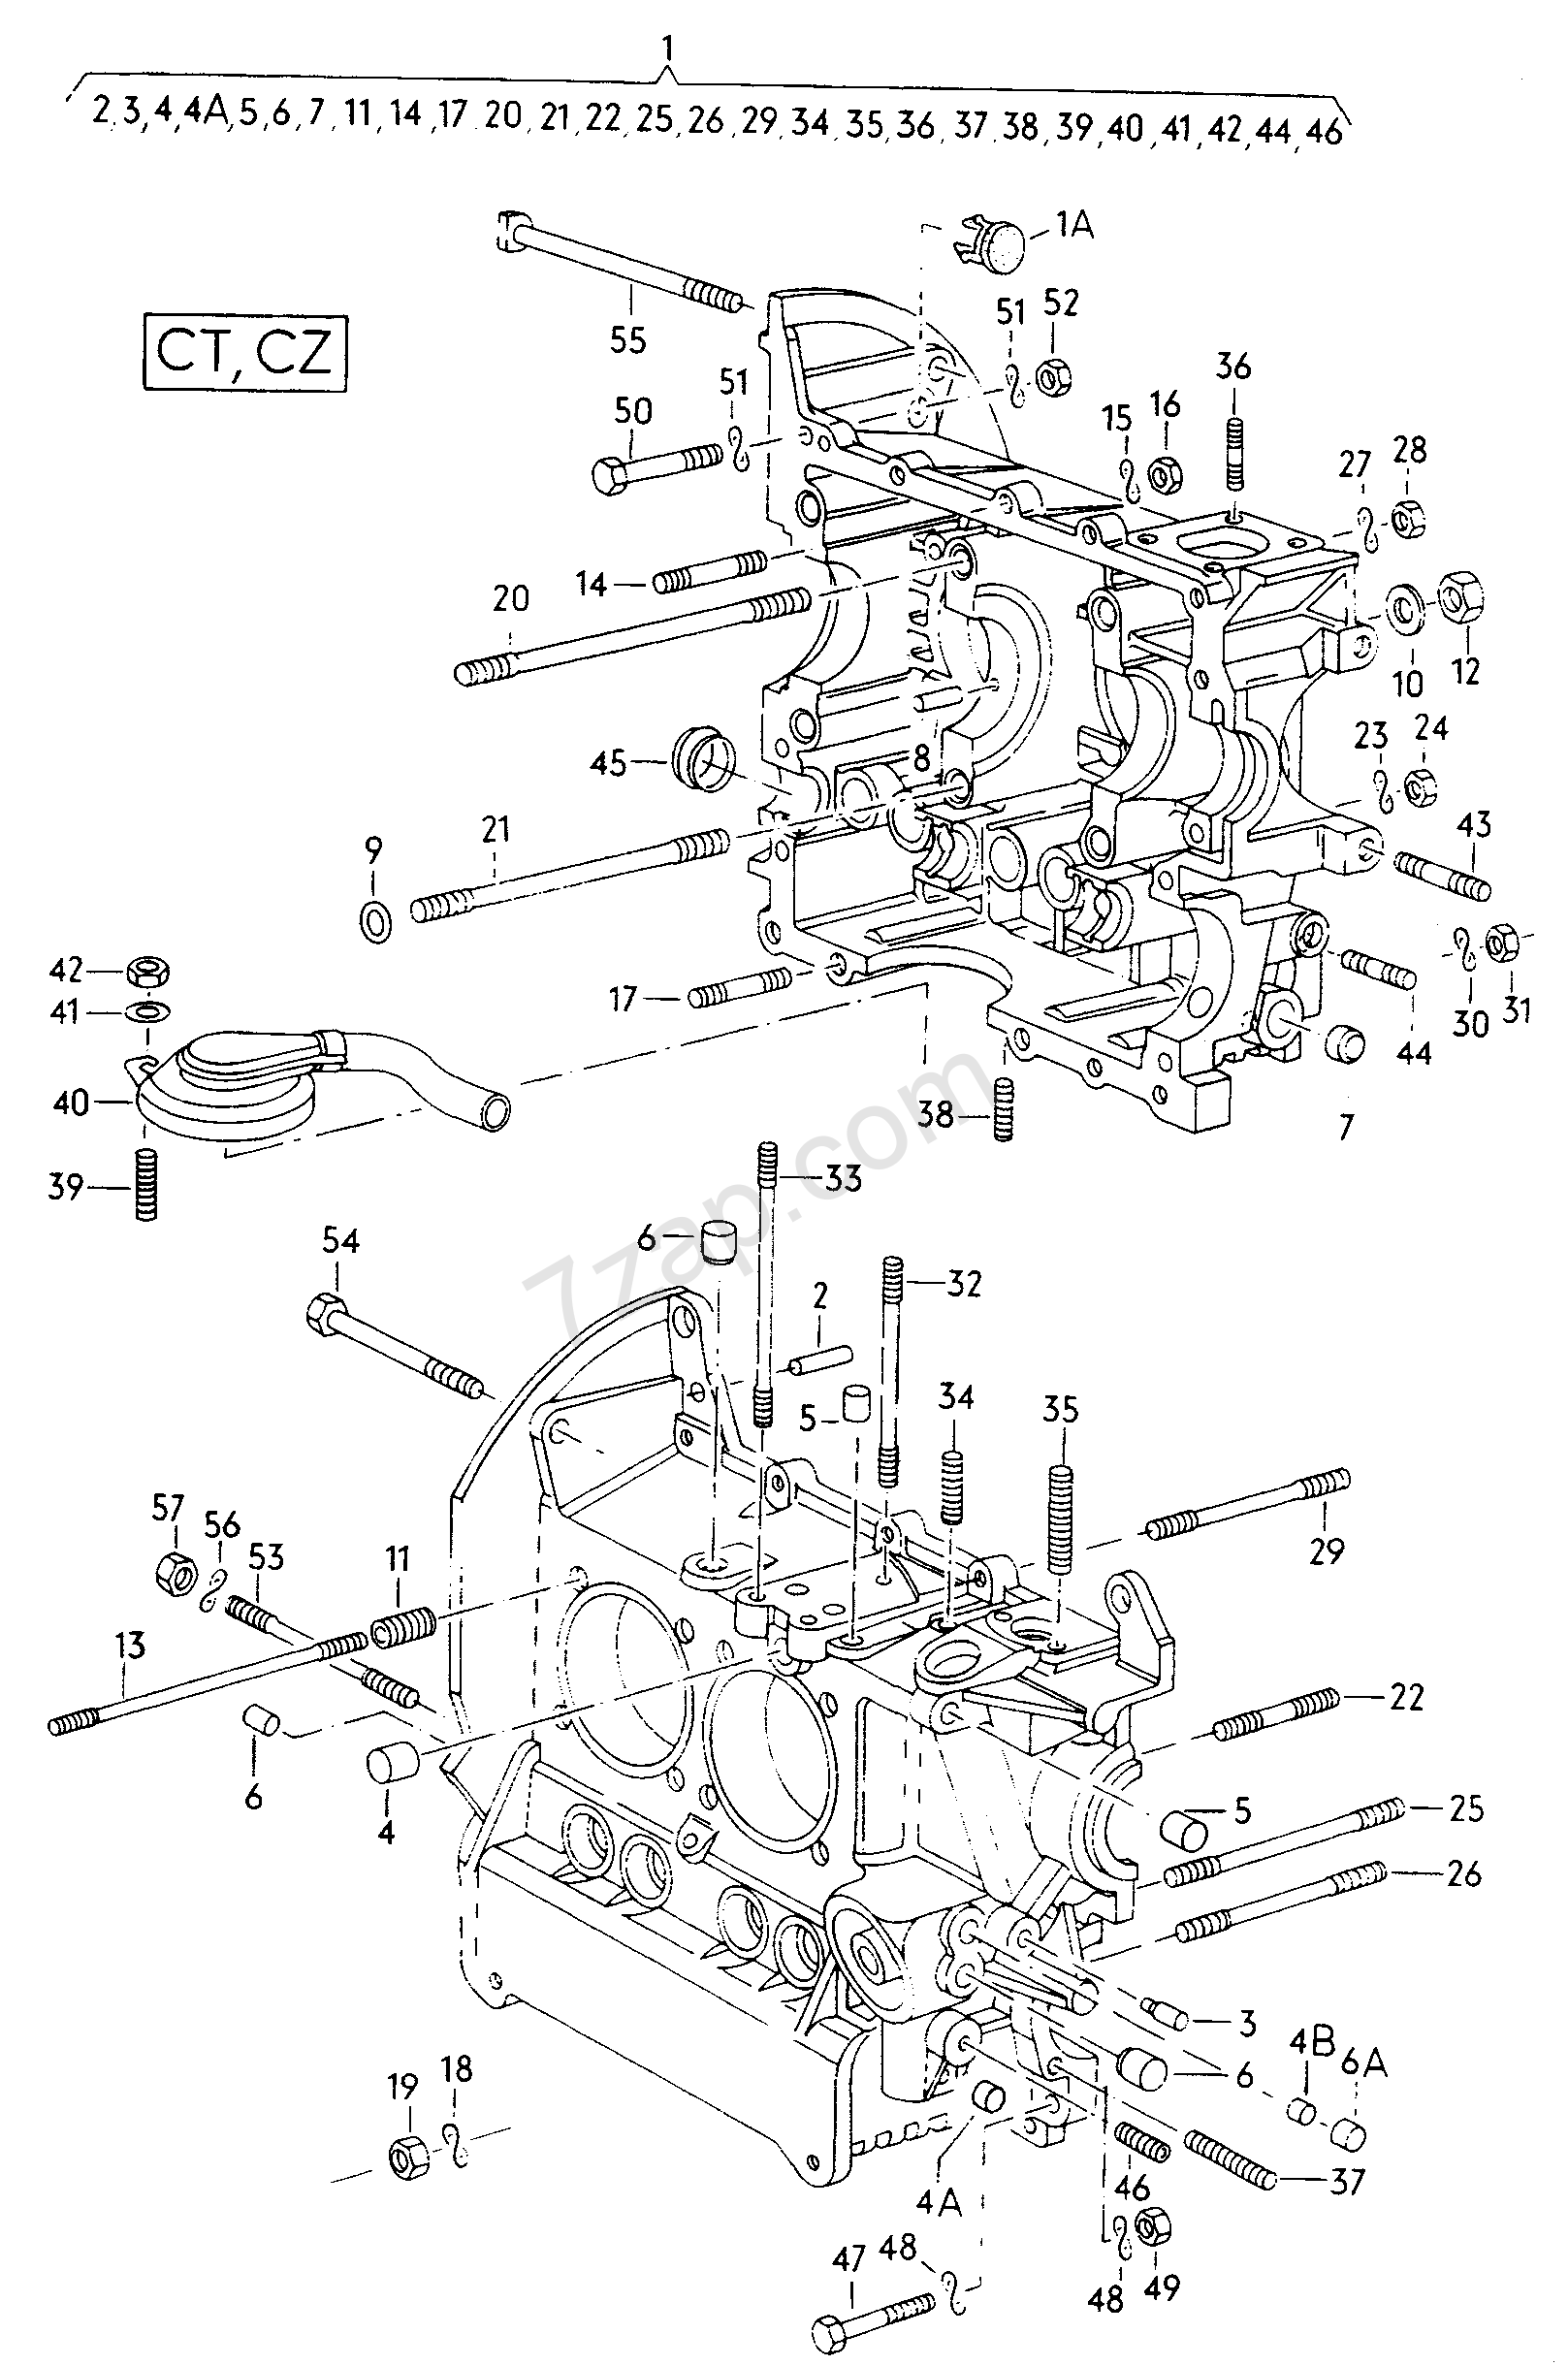 mounting parts for engine and transmission Vanagon (VA